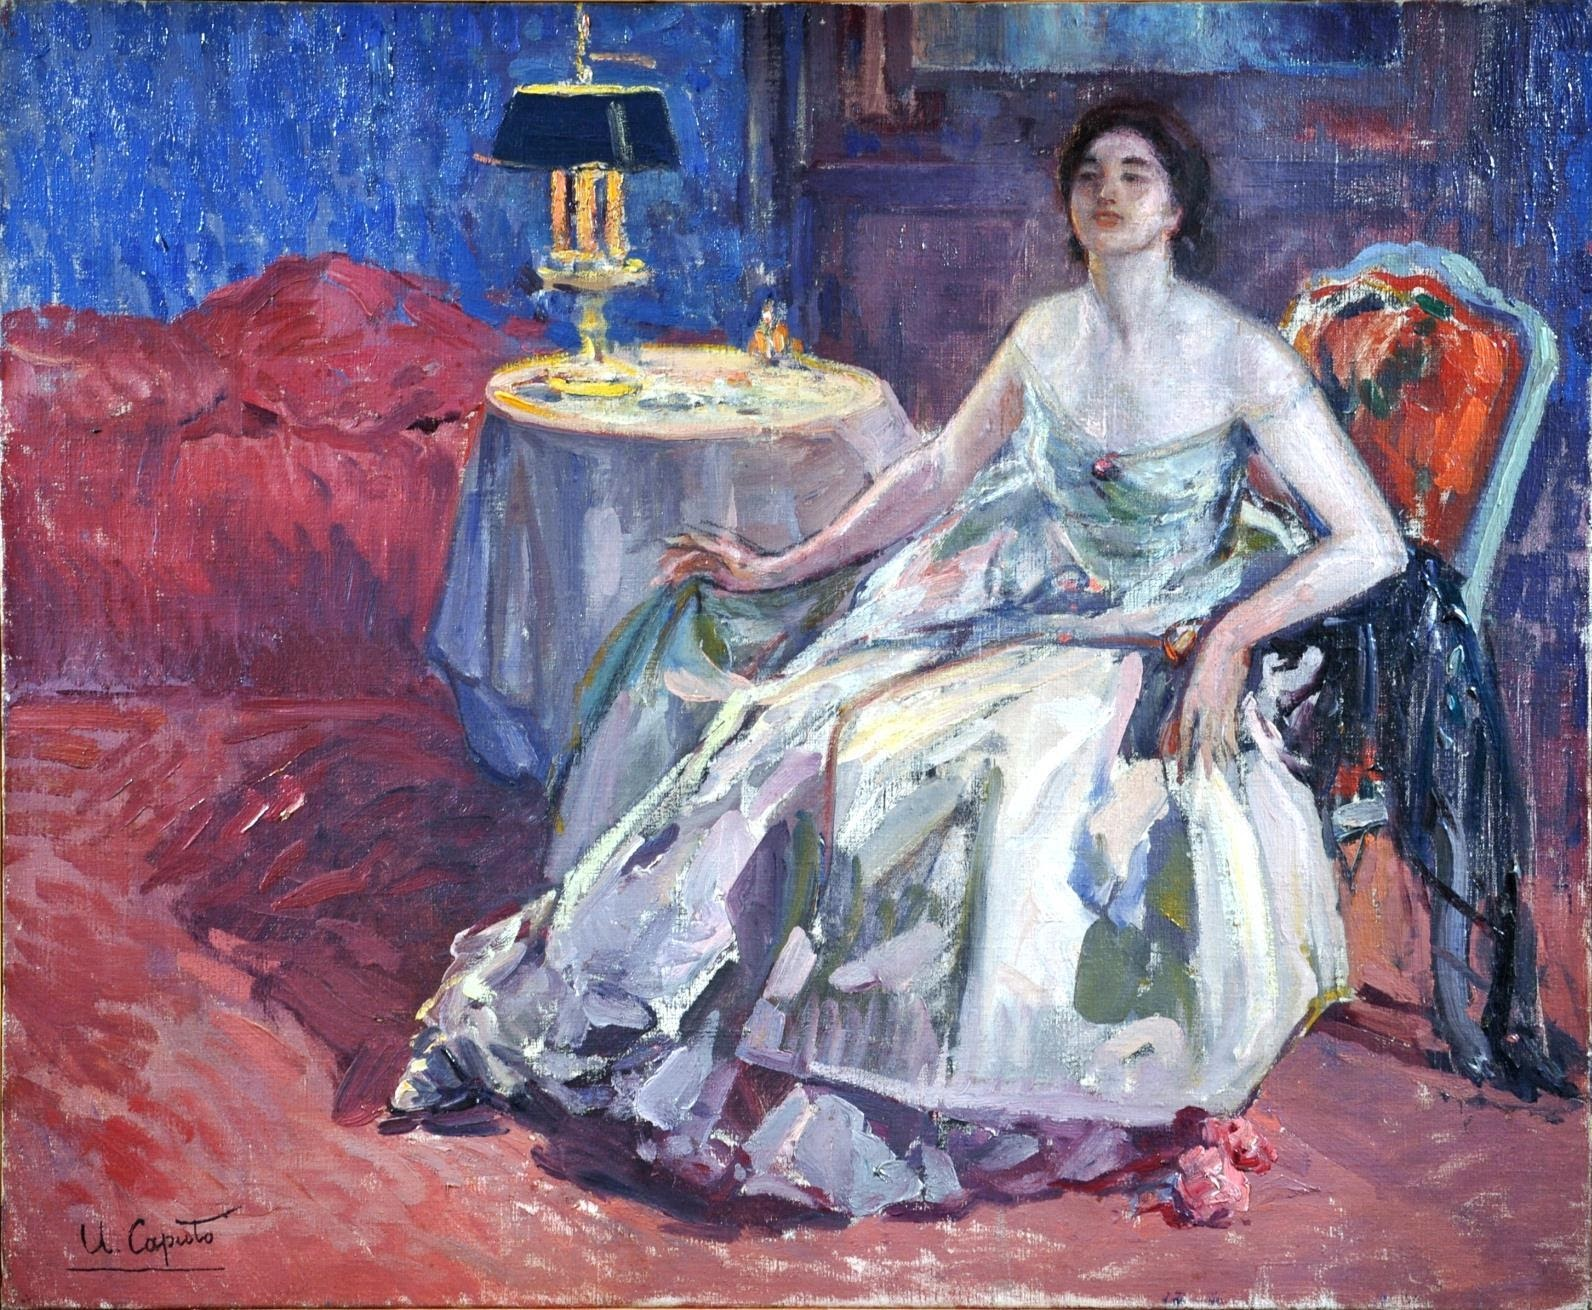 Ulisse Caputo Woman in an Interior